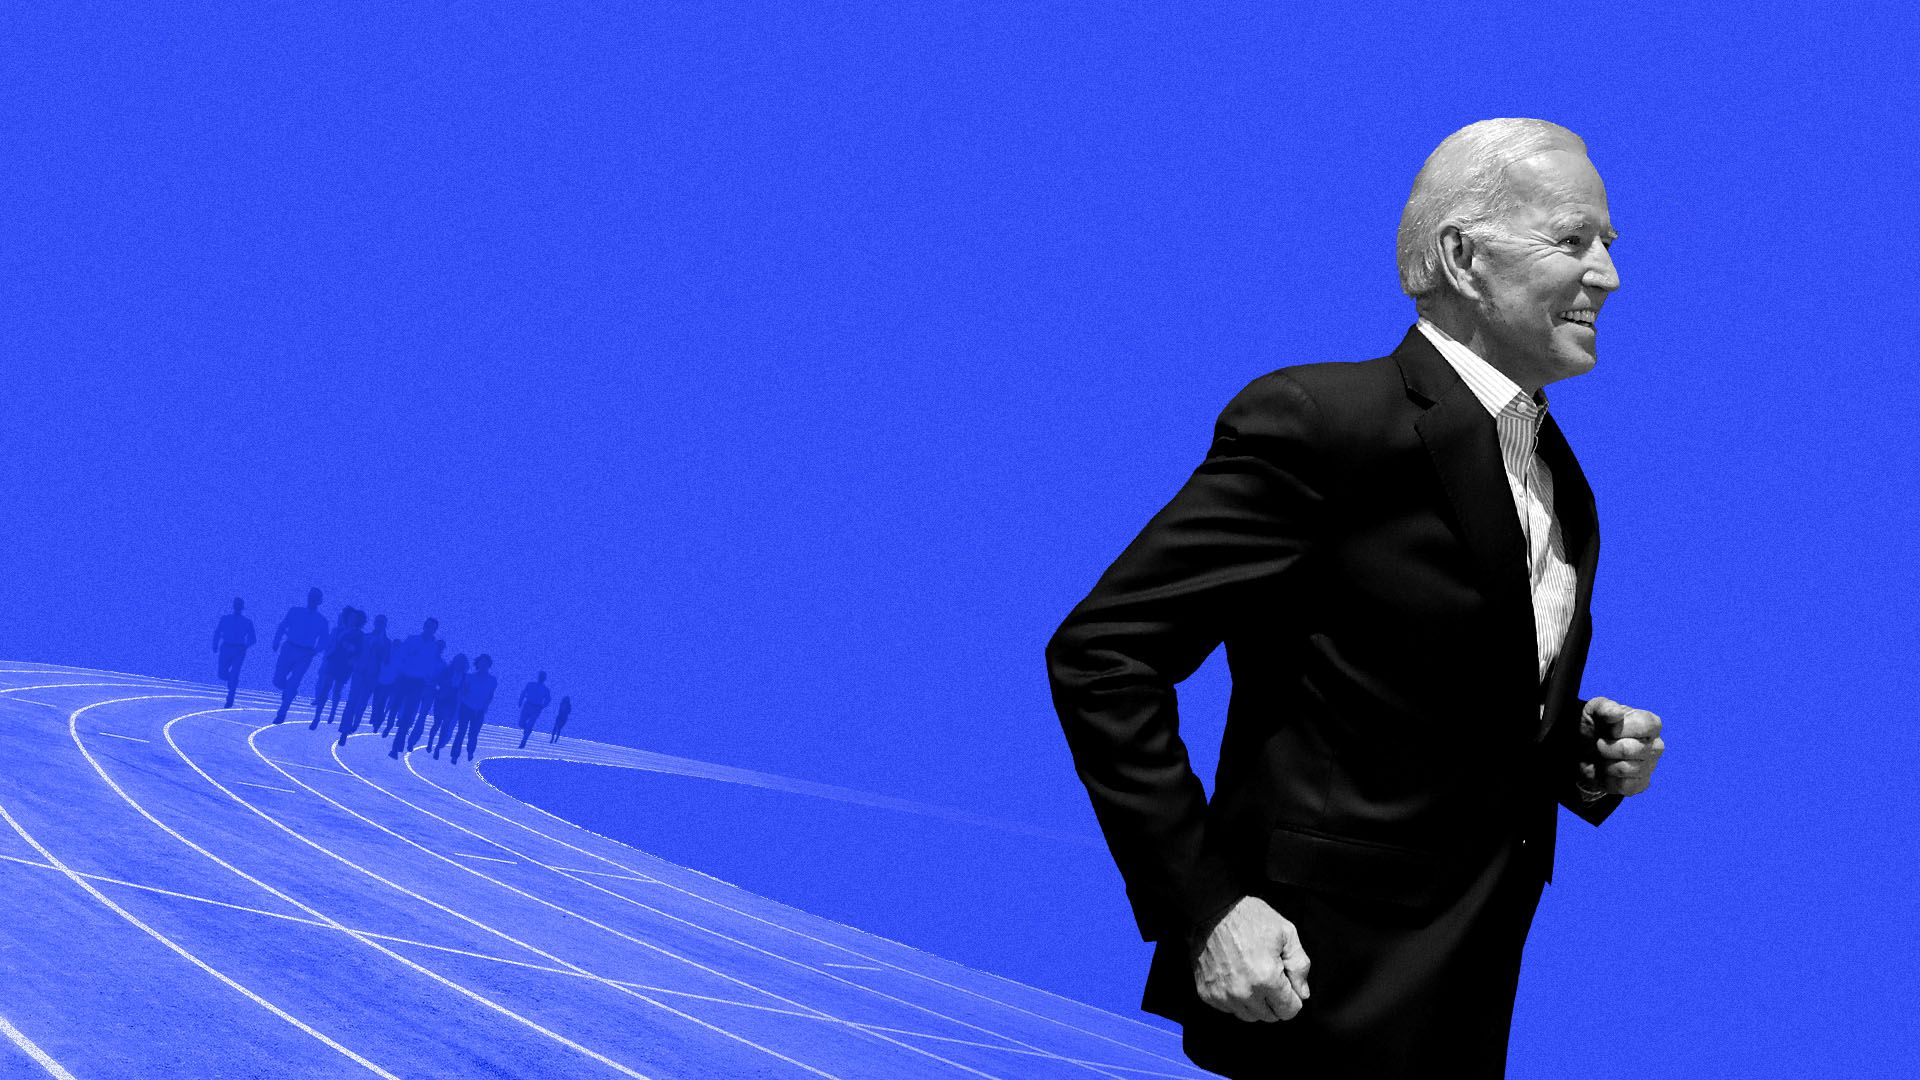 Illustration of Joe Biden running ahead of the pack of Democratic candidates